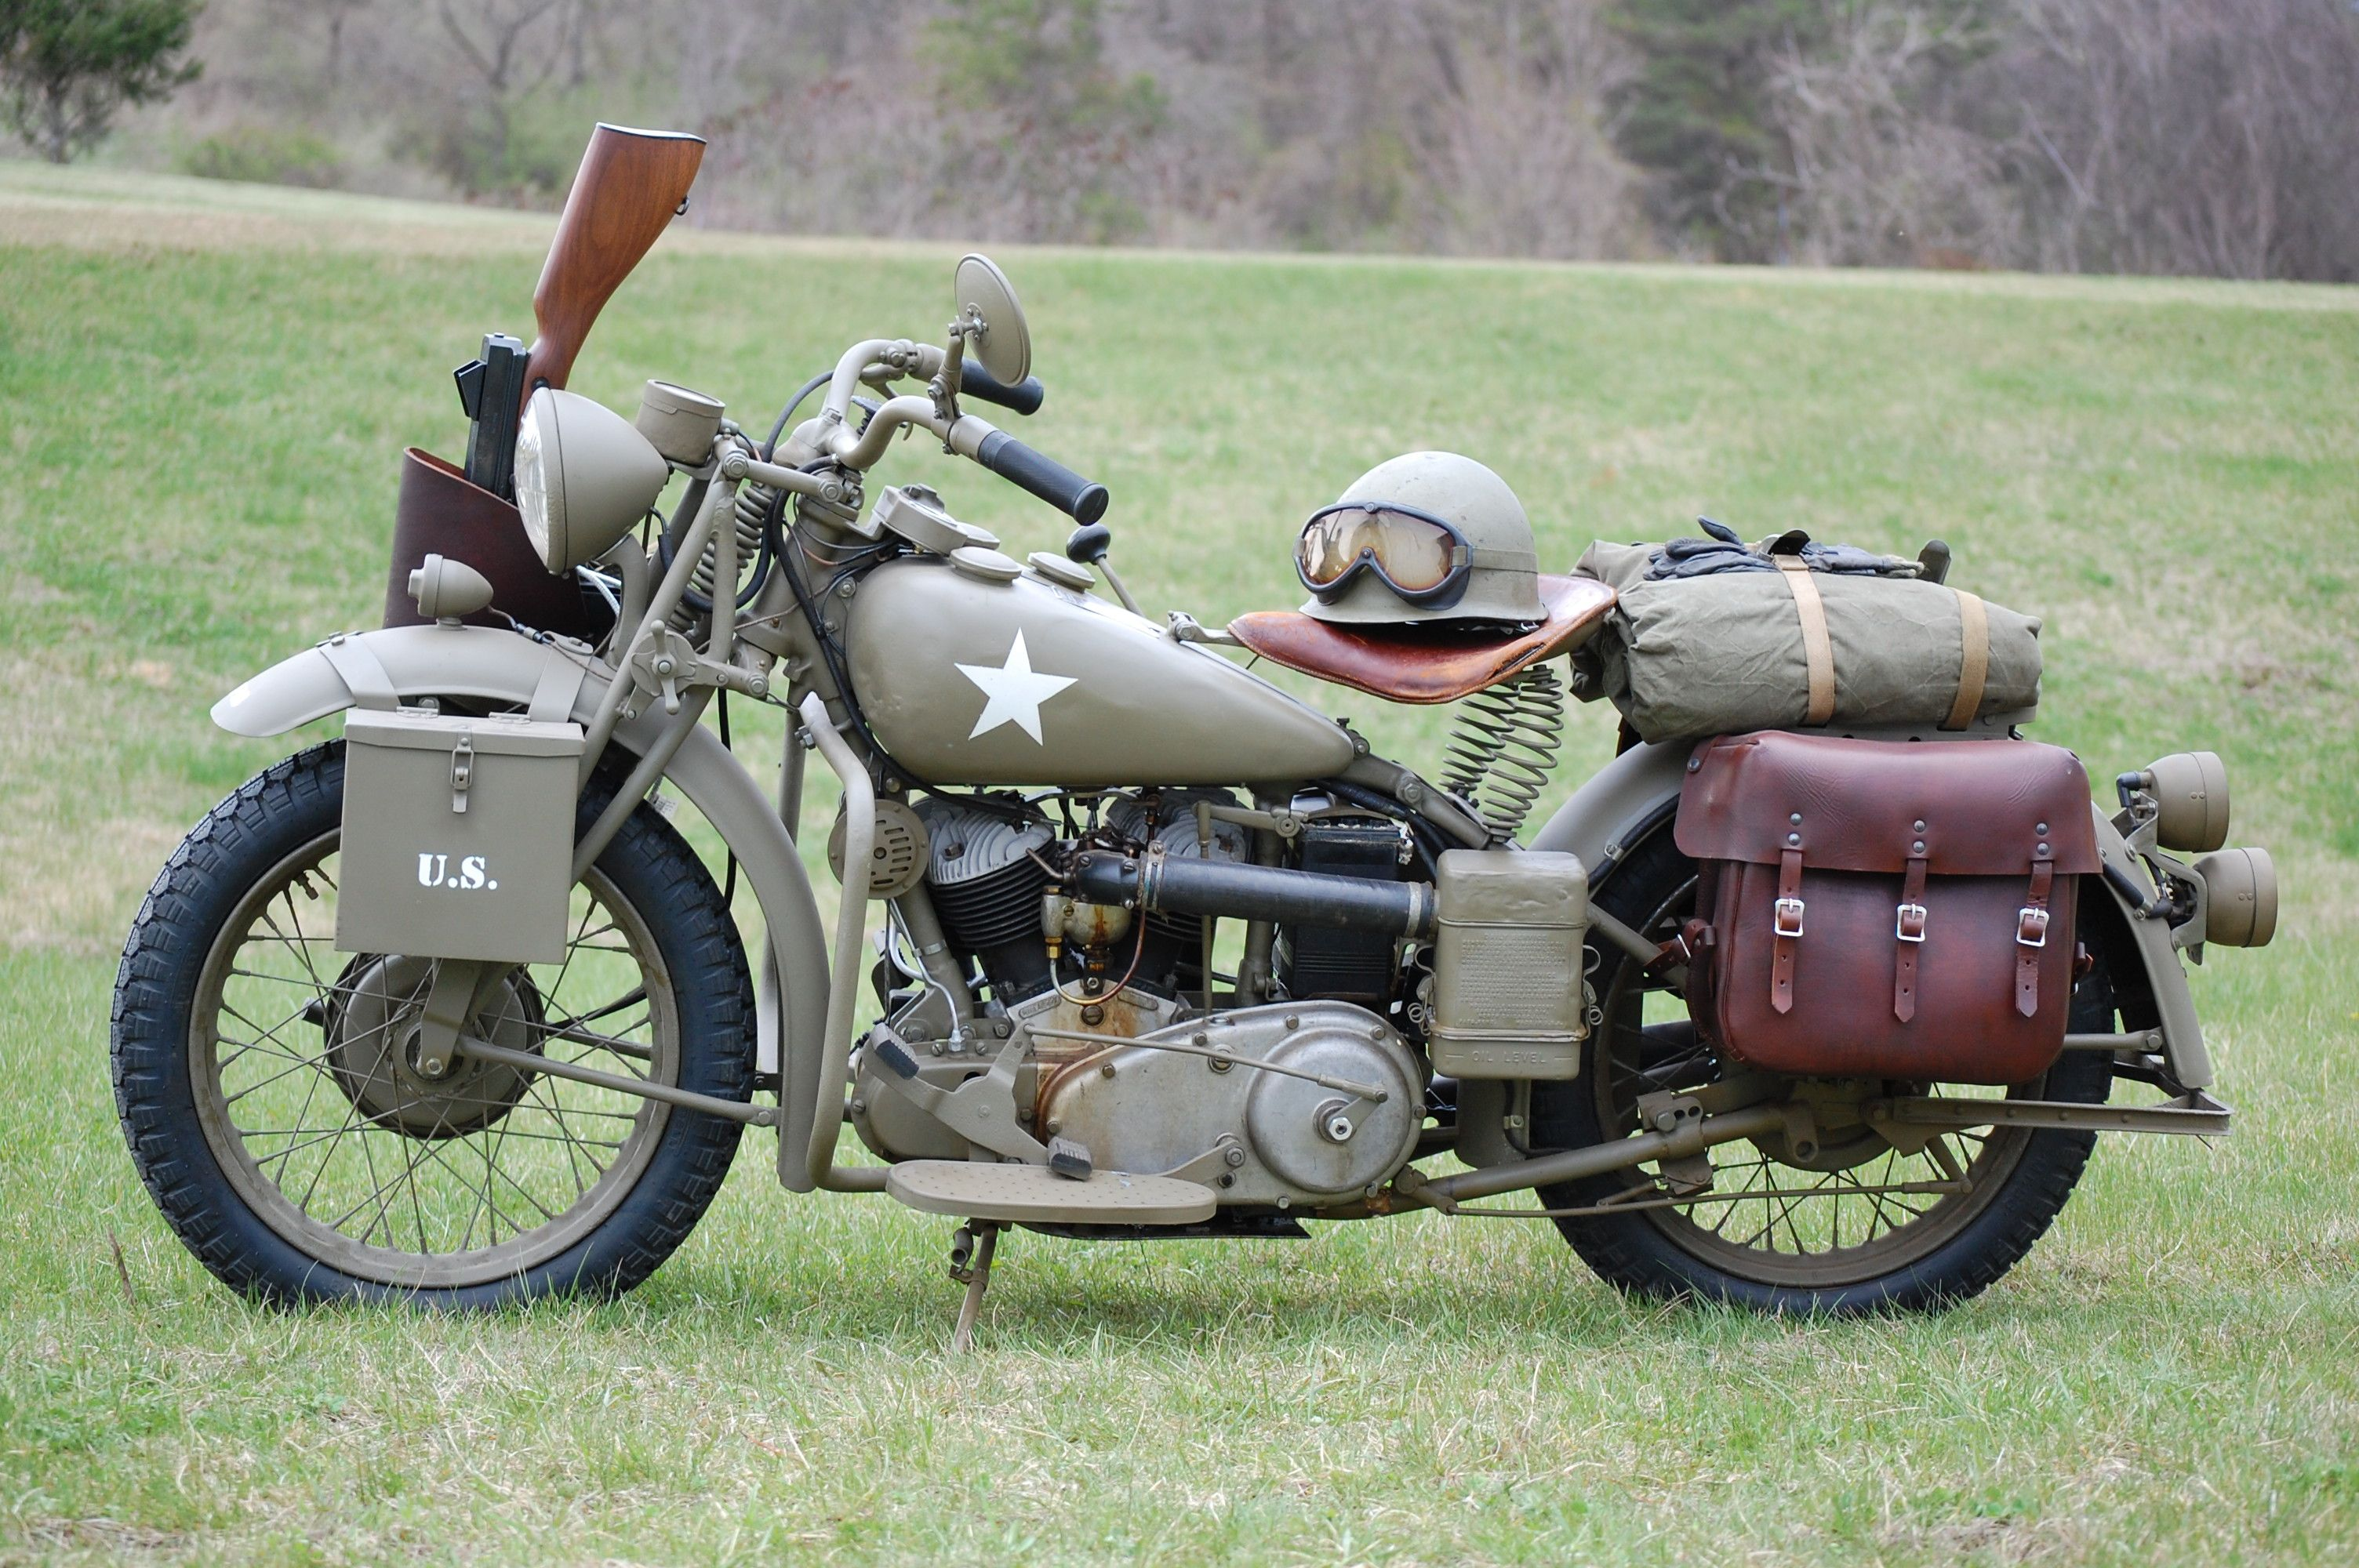 Motorcycles Indian Motorcycle Military Motorcycle Army Motorcycle